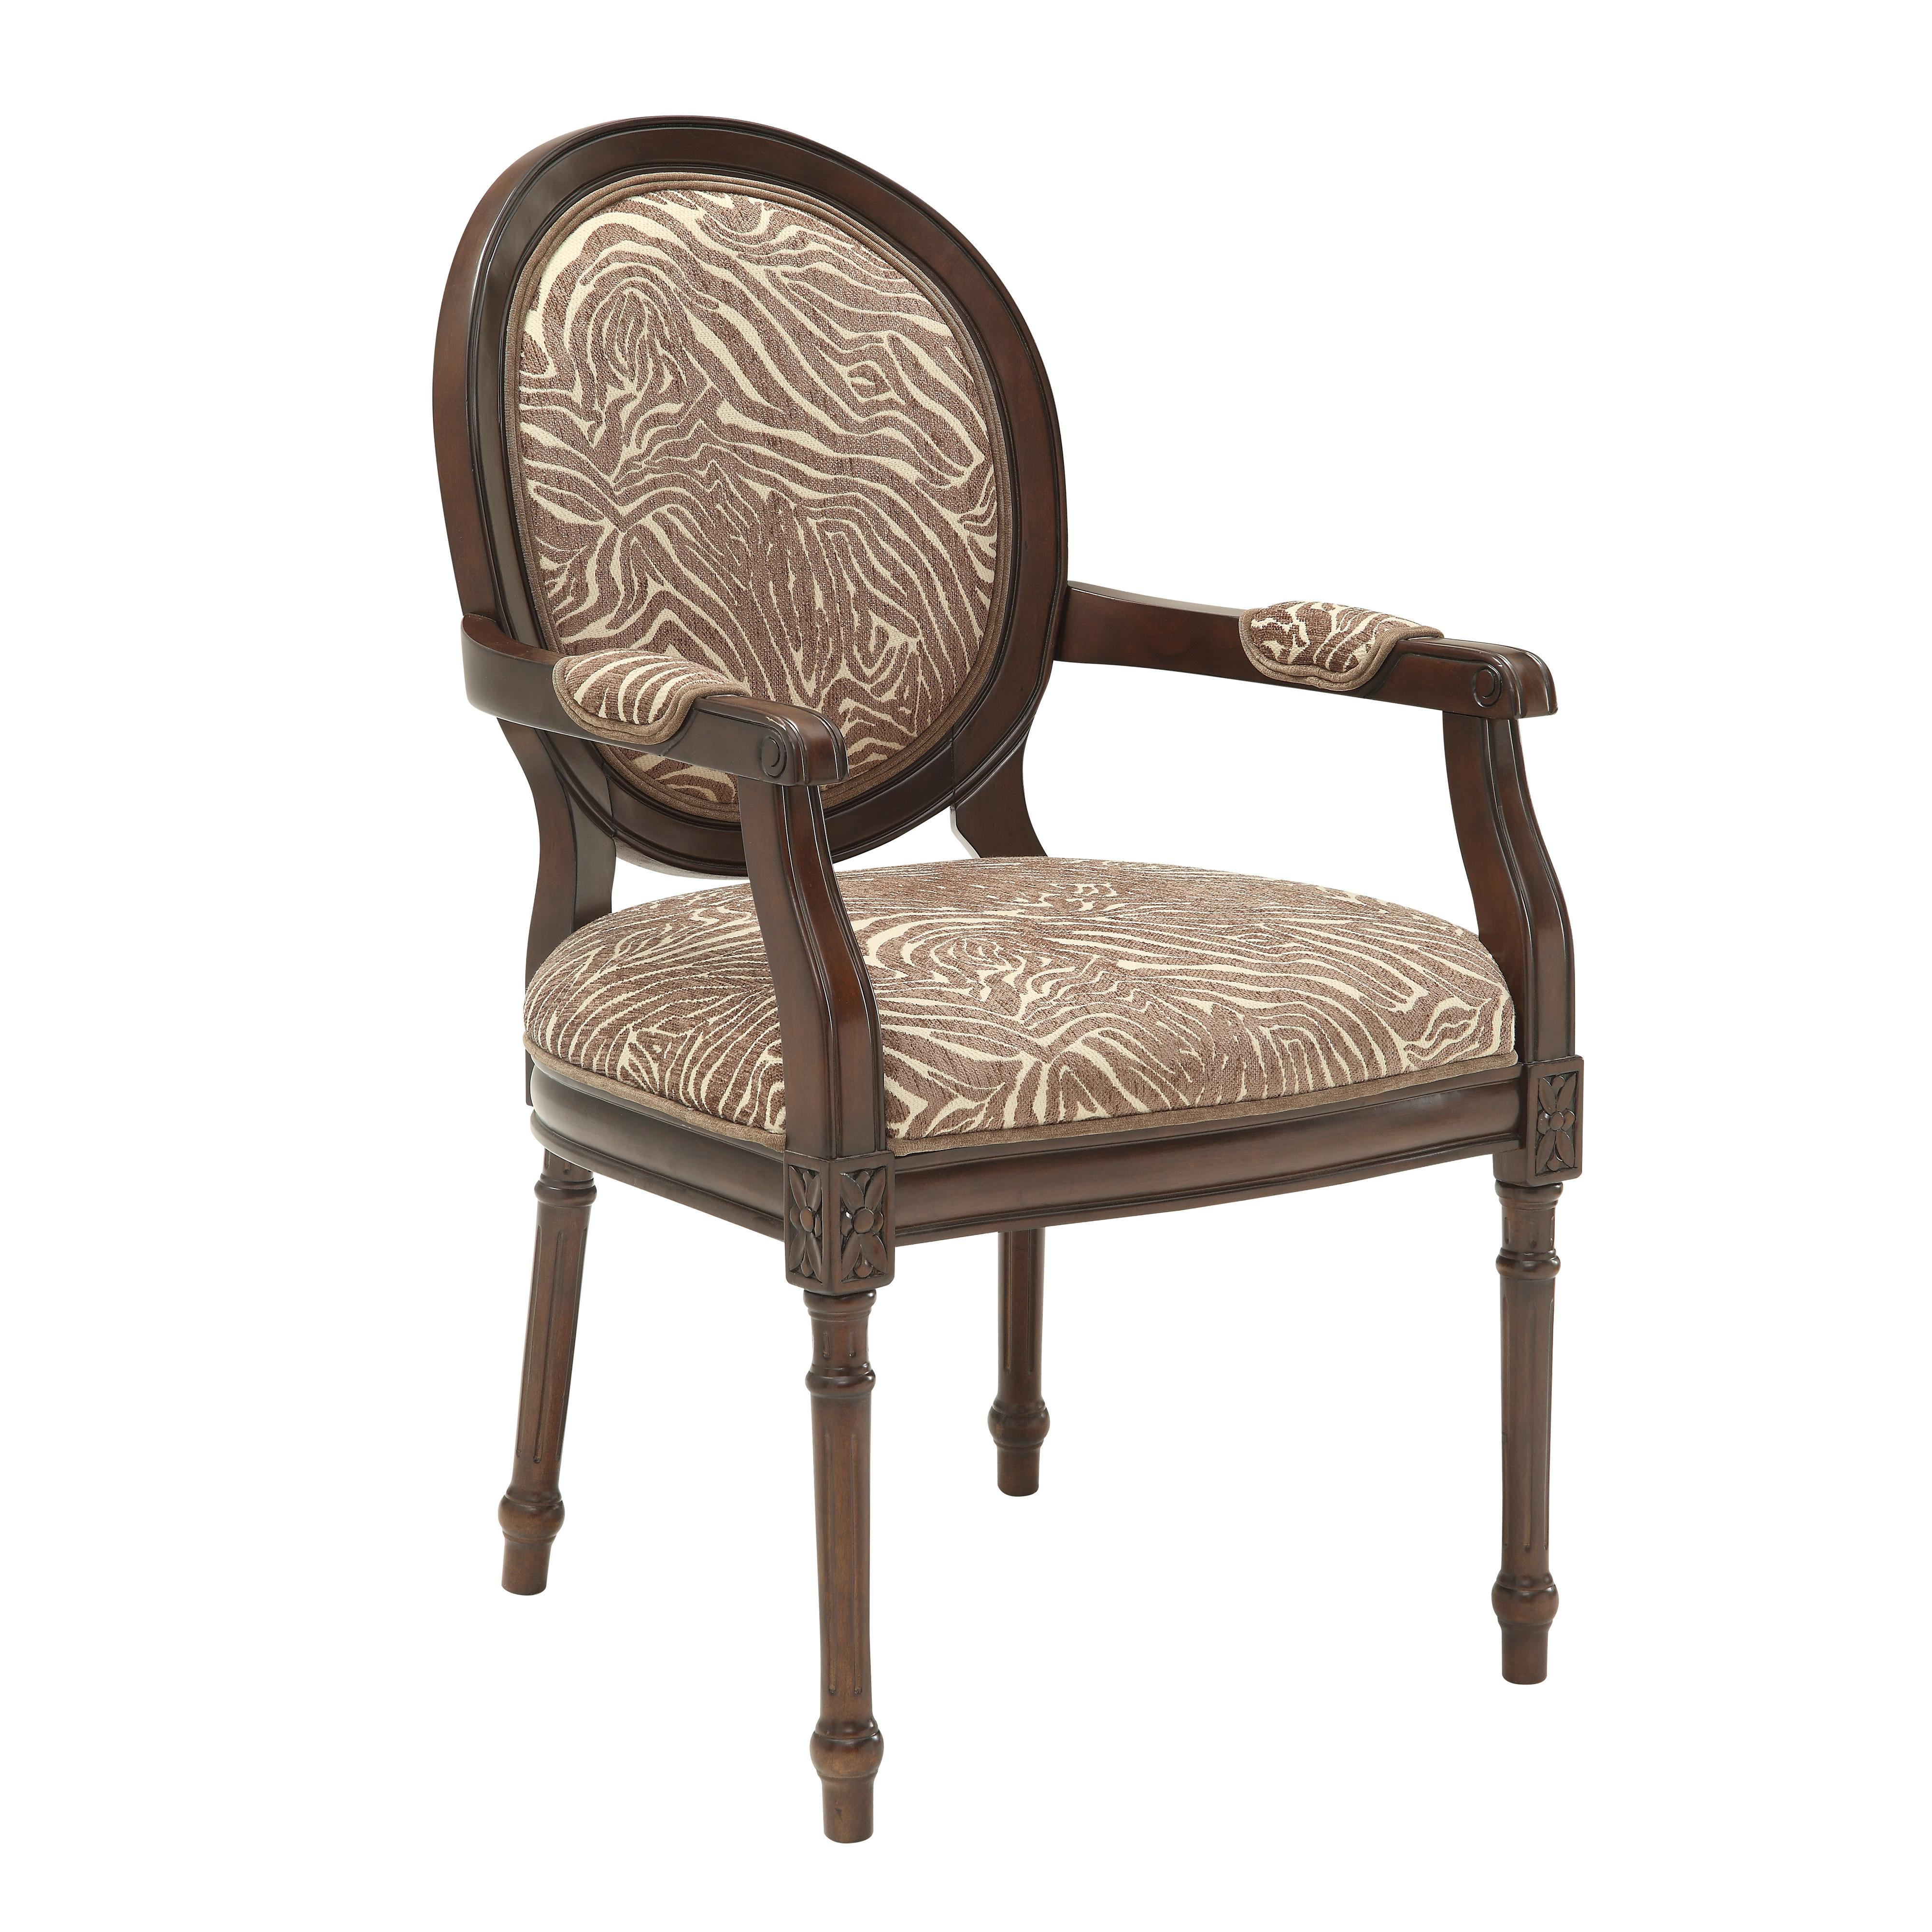 Coast to Coast Imports Coast to Coast Accents Accent Chair - Item Number: 70731